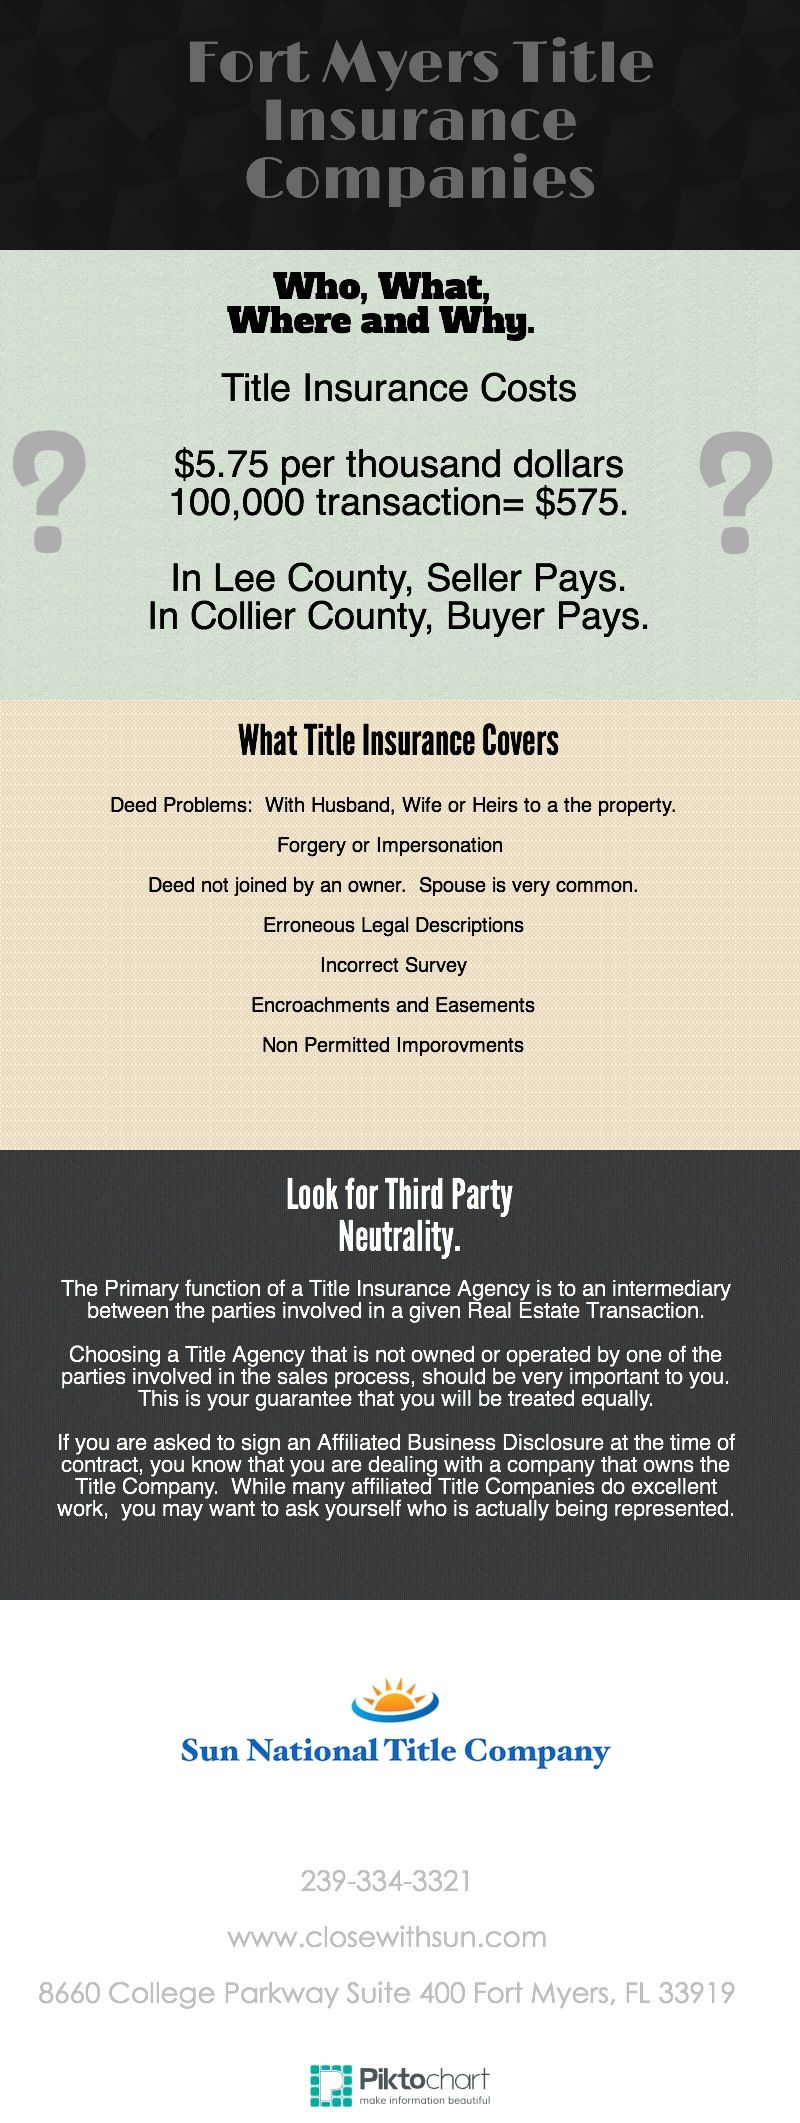 Fort Myers Title Insurance Companies Cape Coral Title Insurance Company Title Insurance Fort Myers Cape Coral